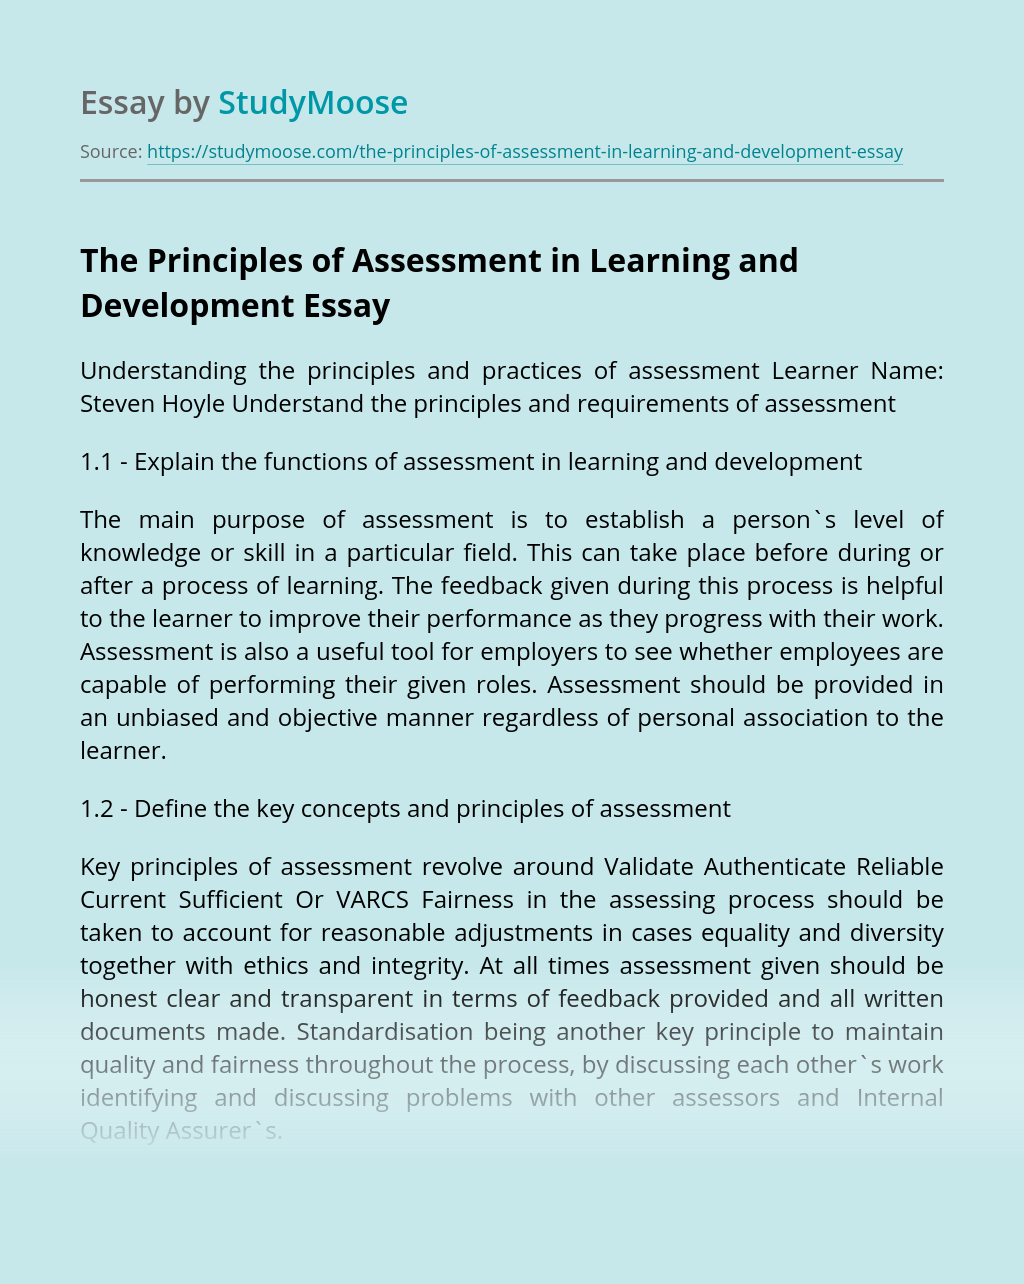 The Principles of Assessment in Learning and Development